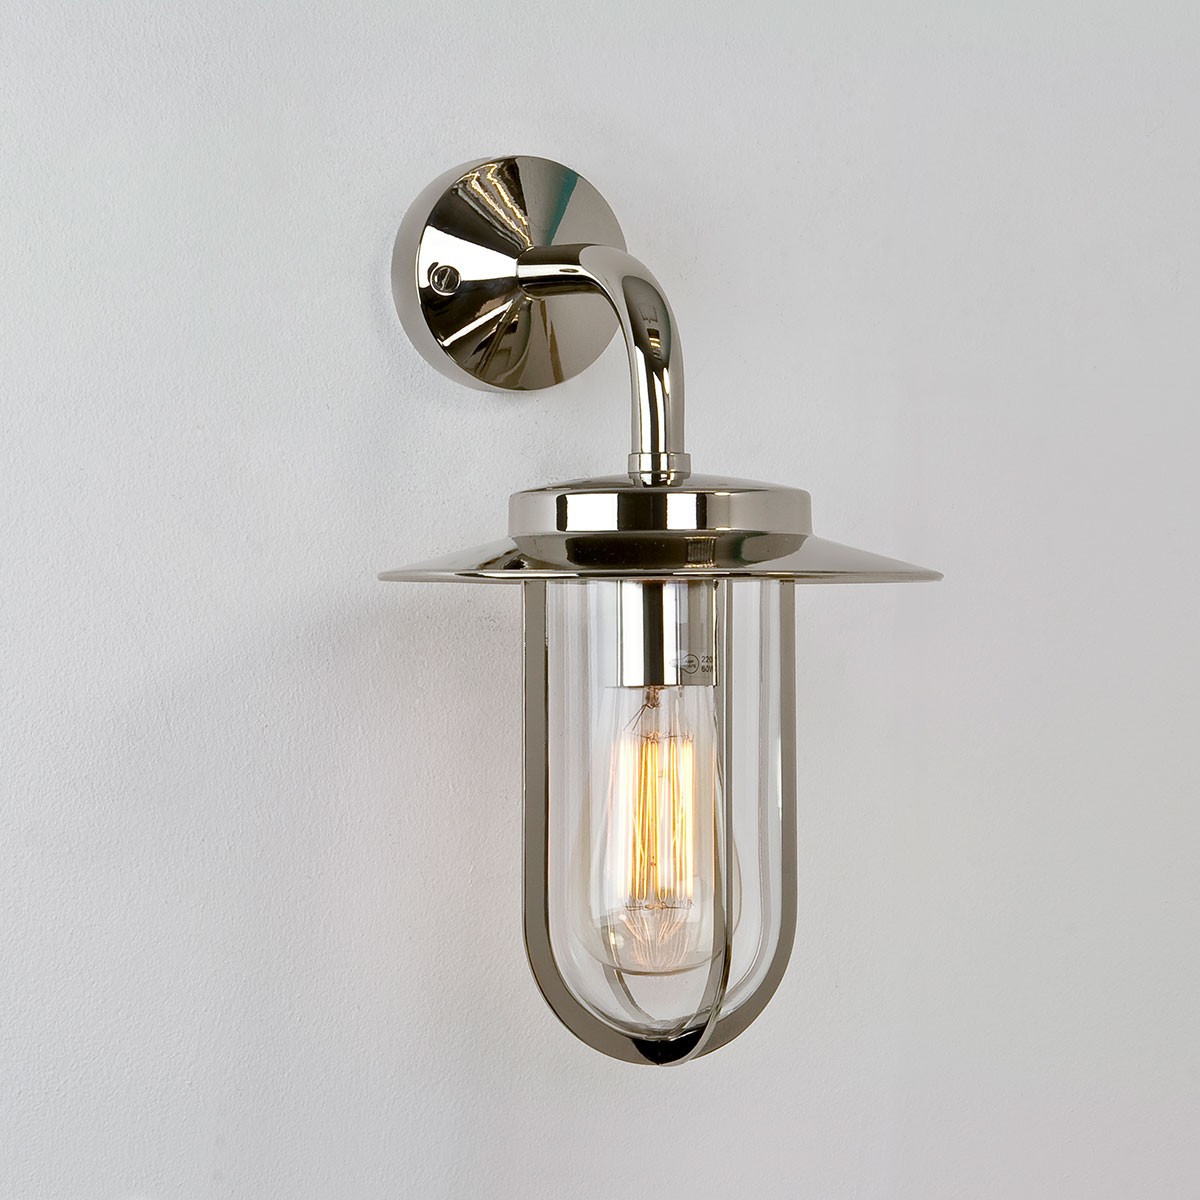 Luxury Outside Wall Lights : Astro Montparnasse Wall Polished Nickel Outdoor Wall Light at UK Electrical Supplies.